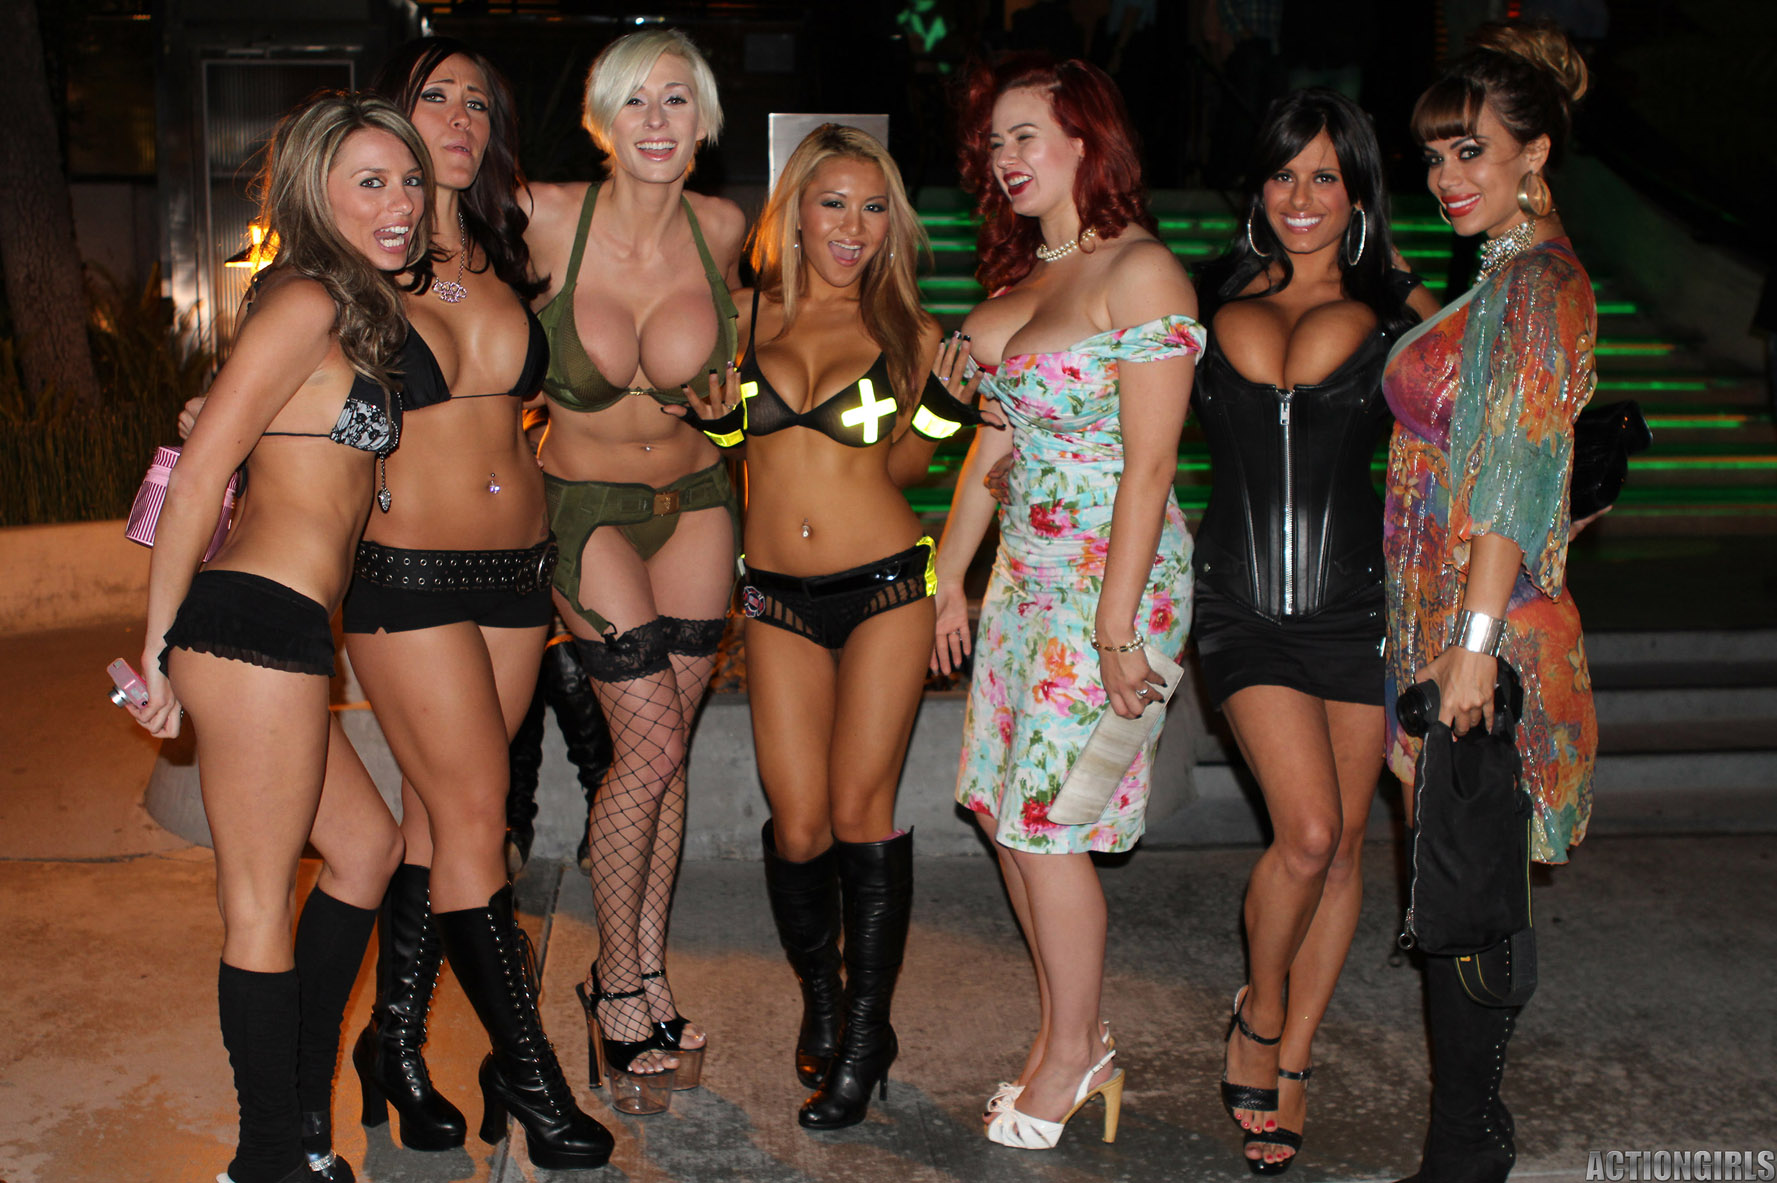 Inside New Yorks Underground Lap Dance Parties Playboy